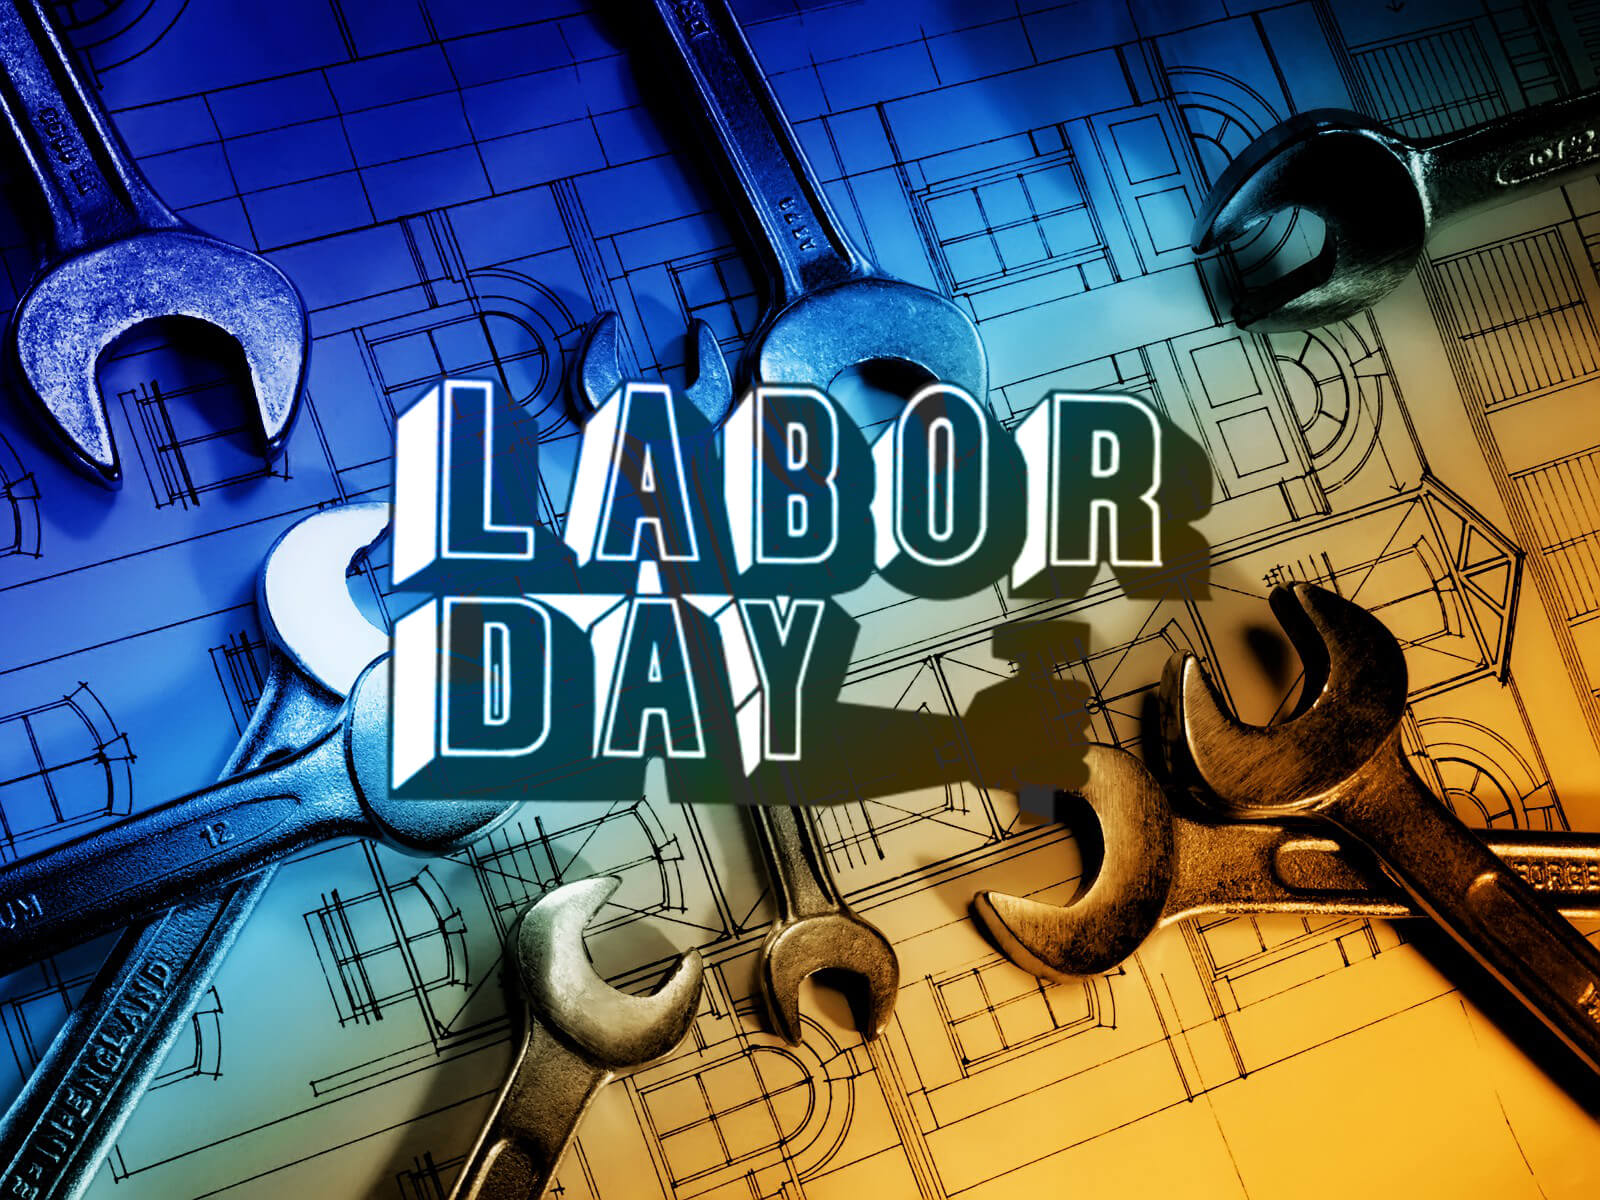 happy labour labor day tools latest hd wallpaper